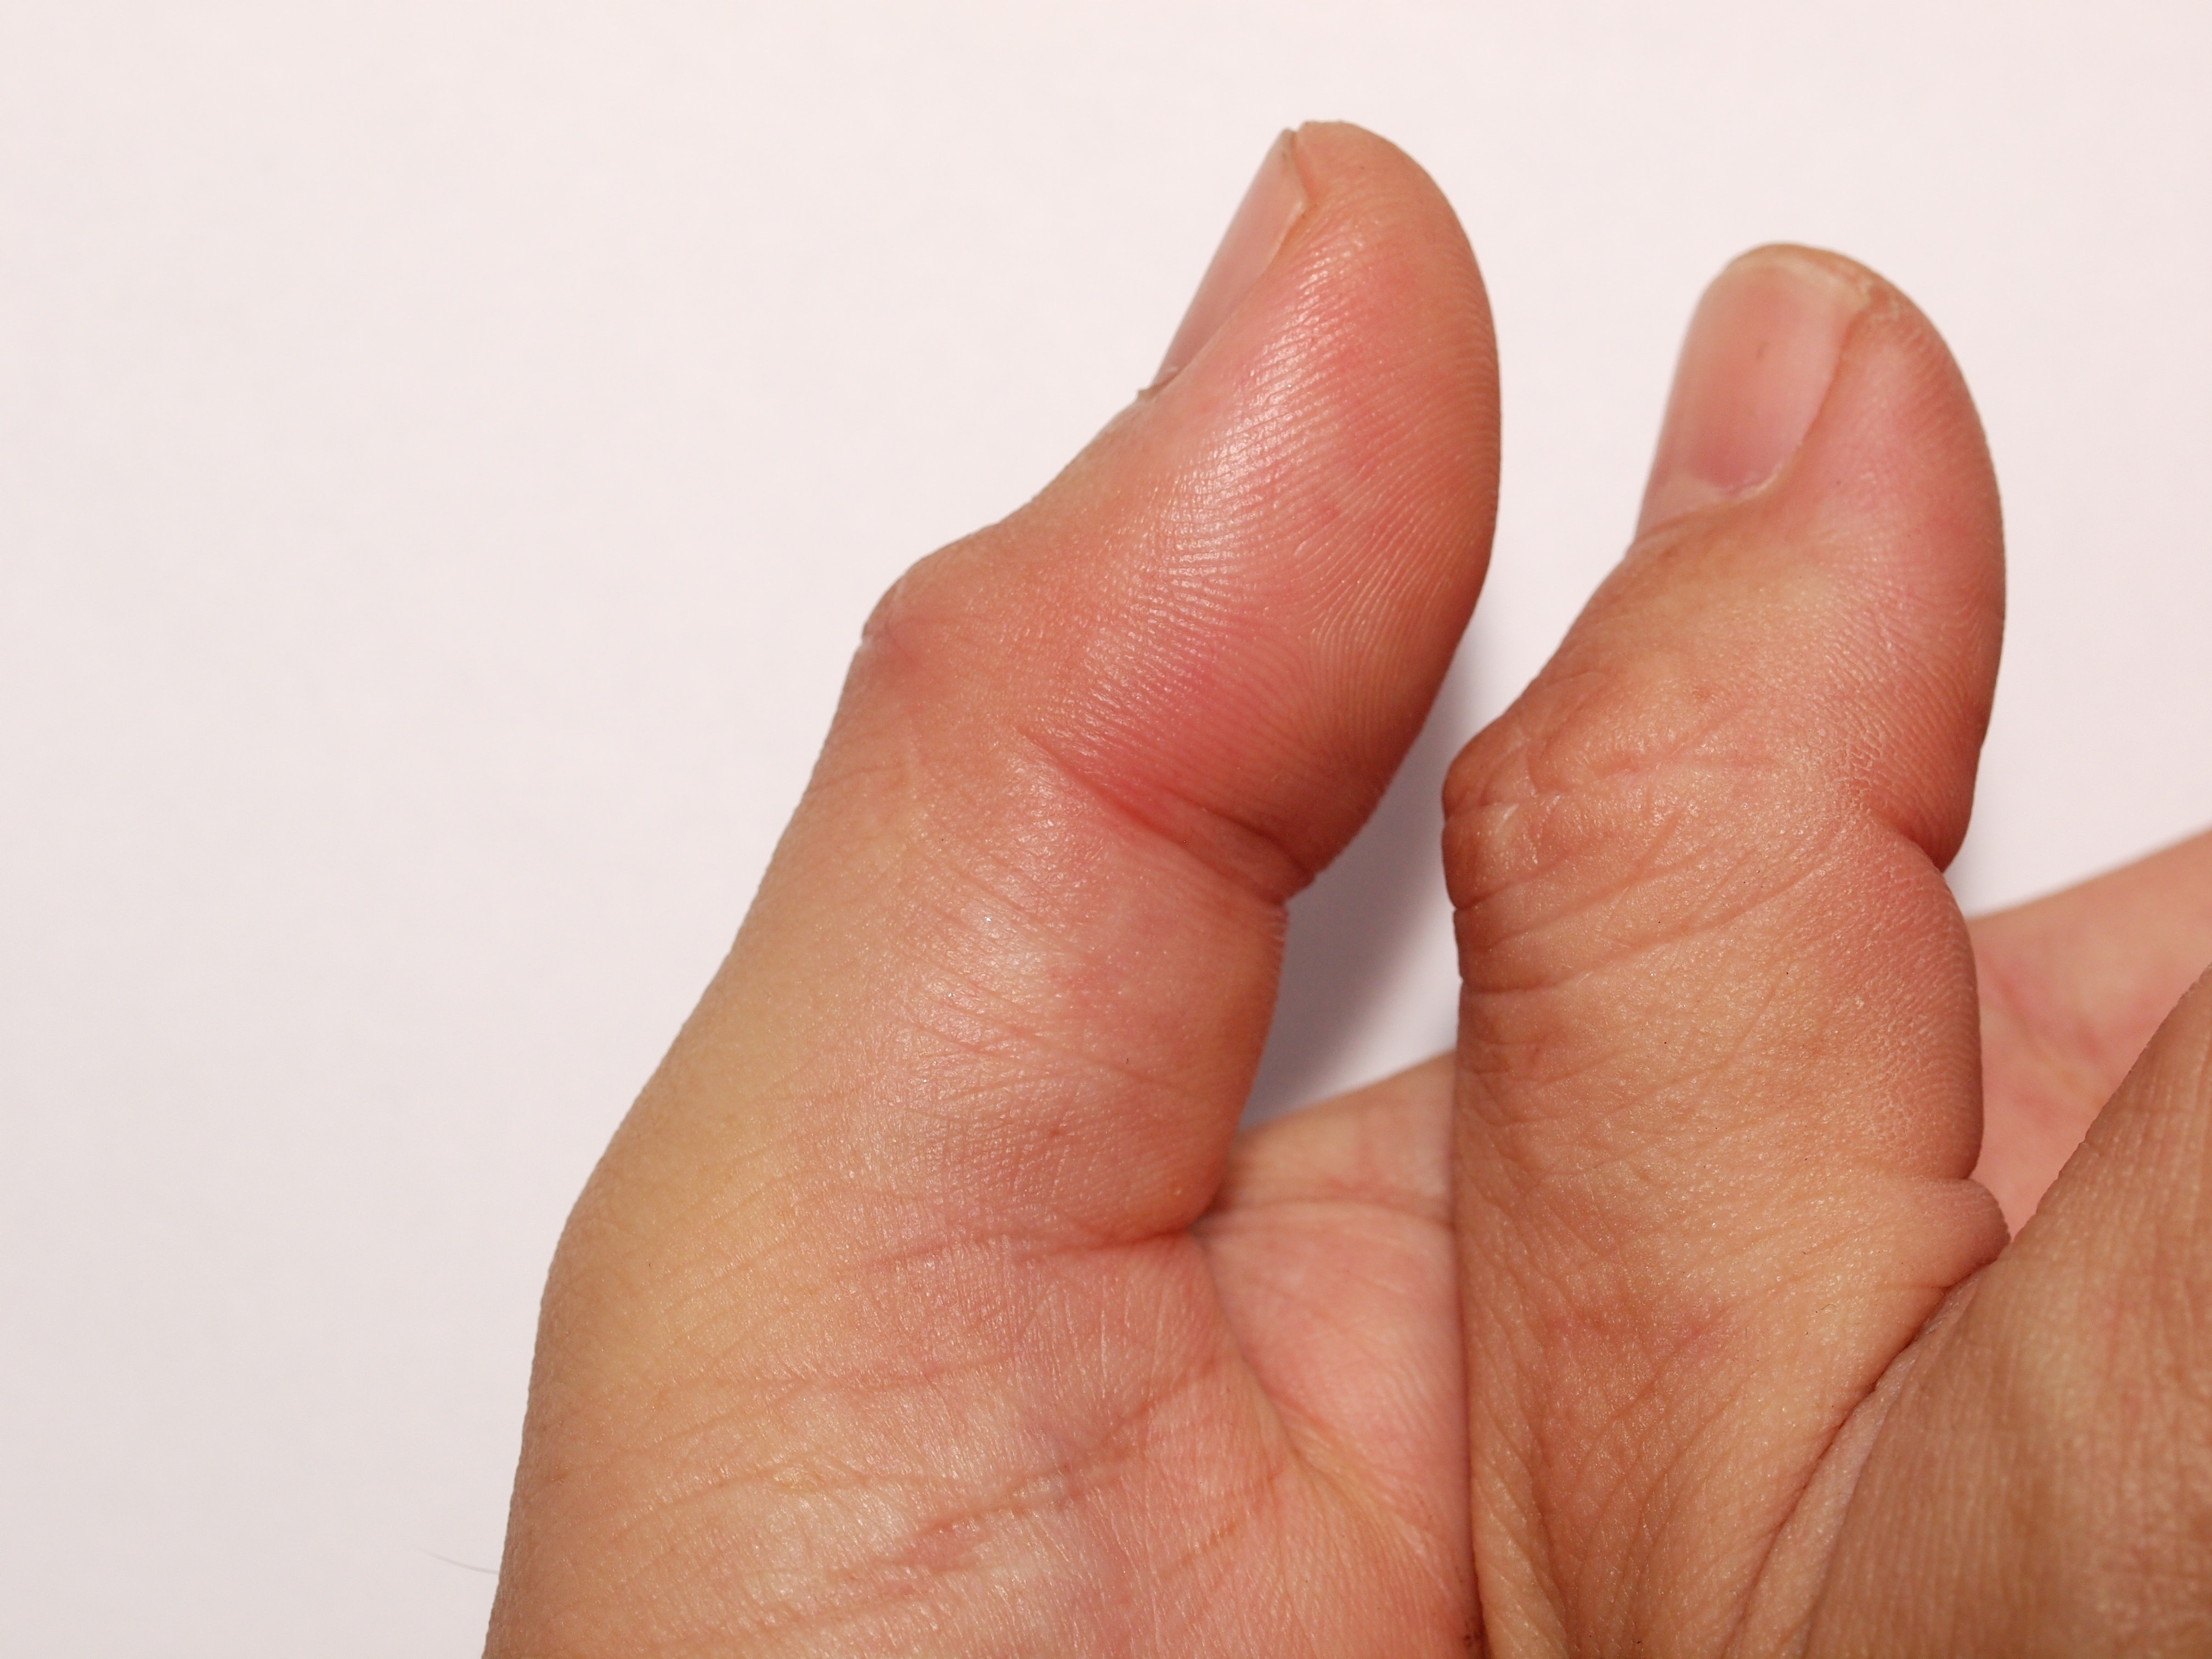 An image depicting a person suffering from swollen thumb symptoms